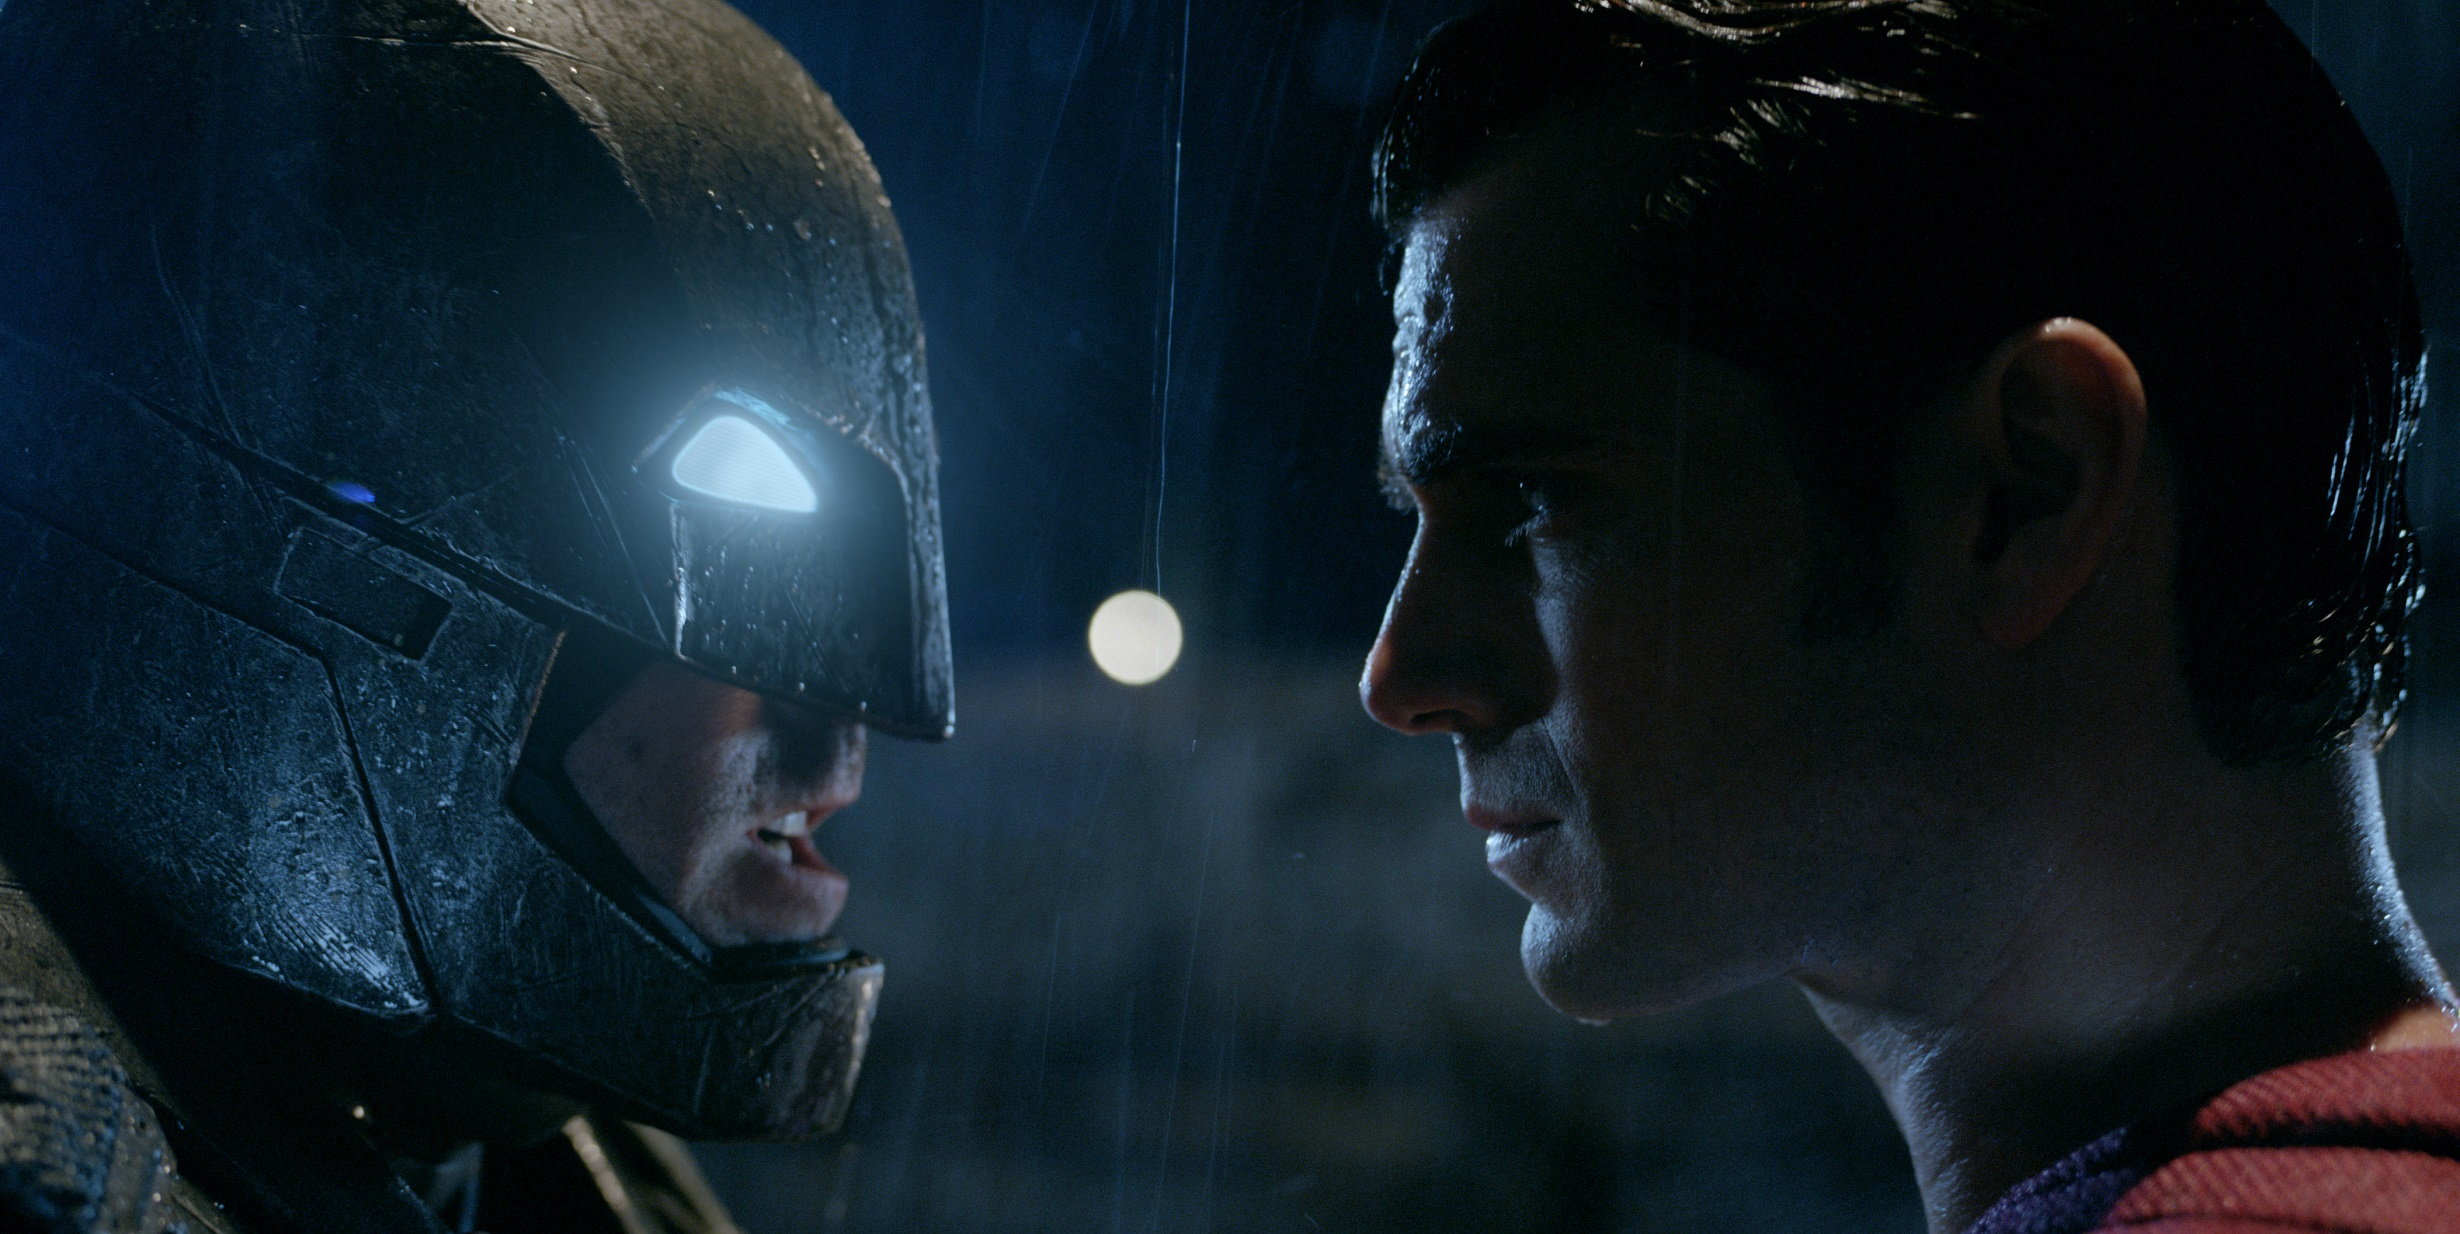 http://cdn1-www.superherohype.com/assets/uploads/gallery/batman-vs-superman/batman-vs-superman-ew-pics-3.jpg